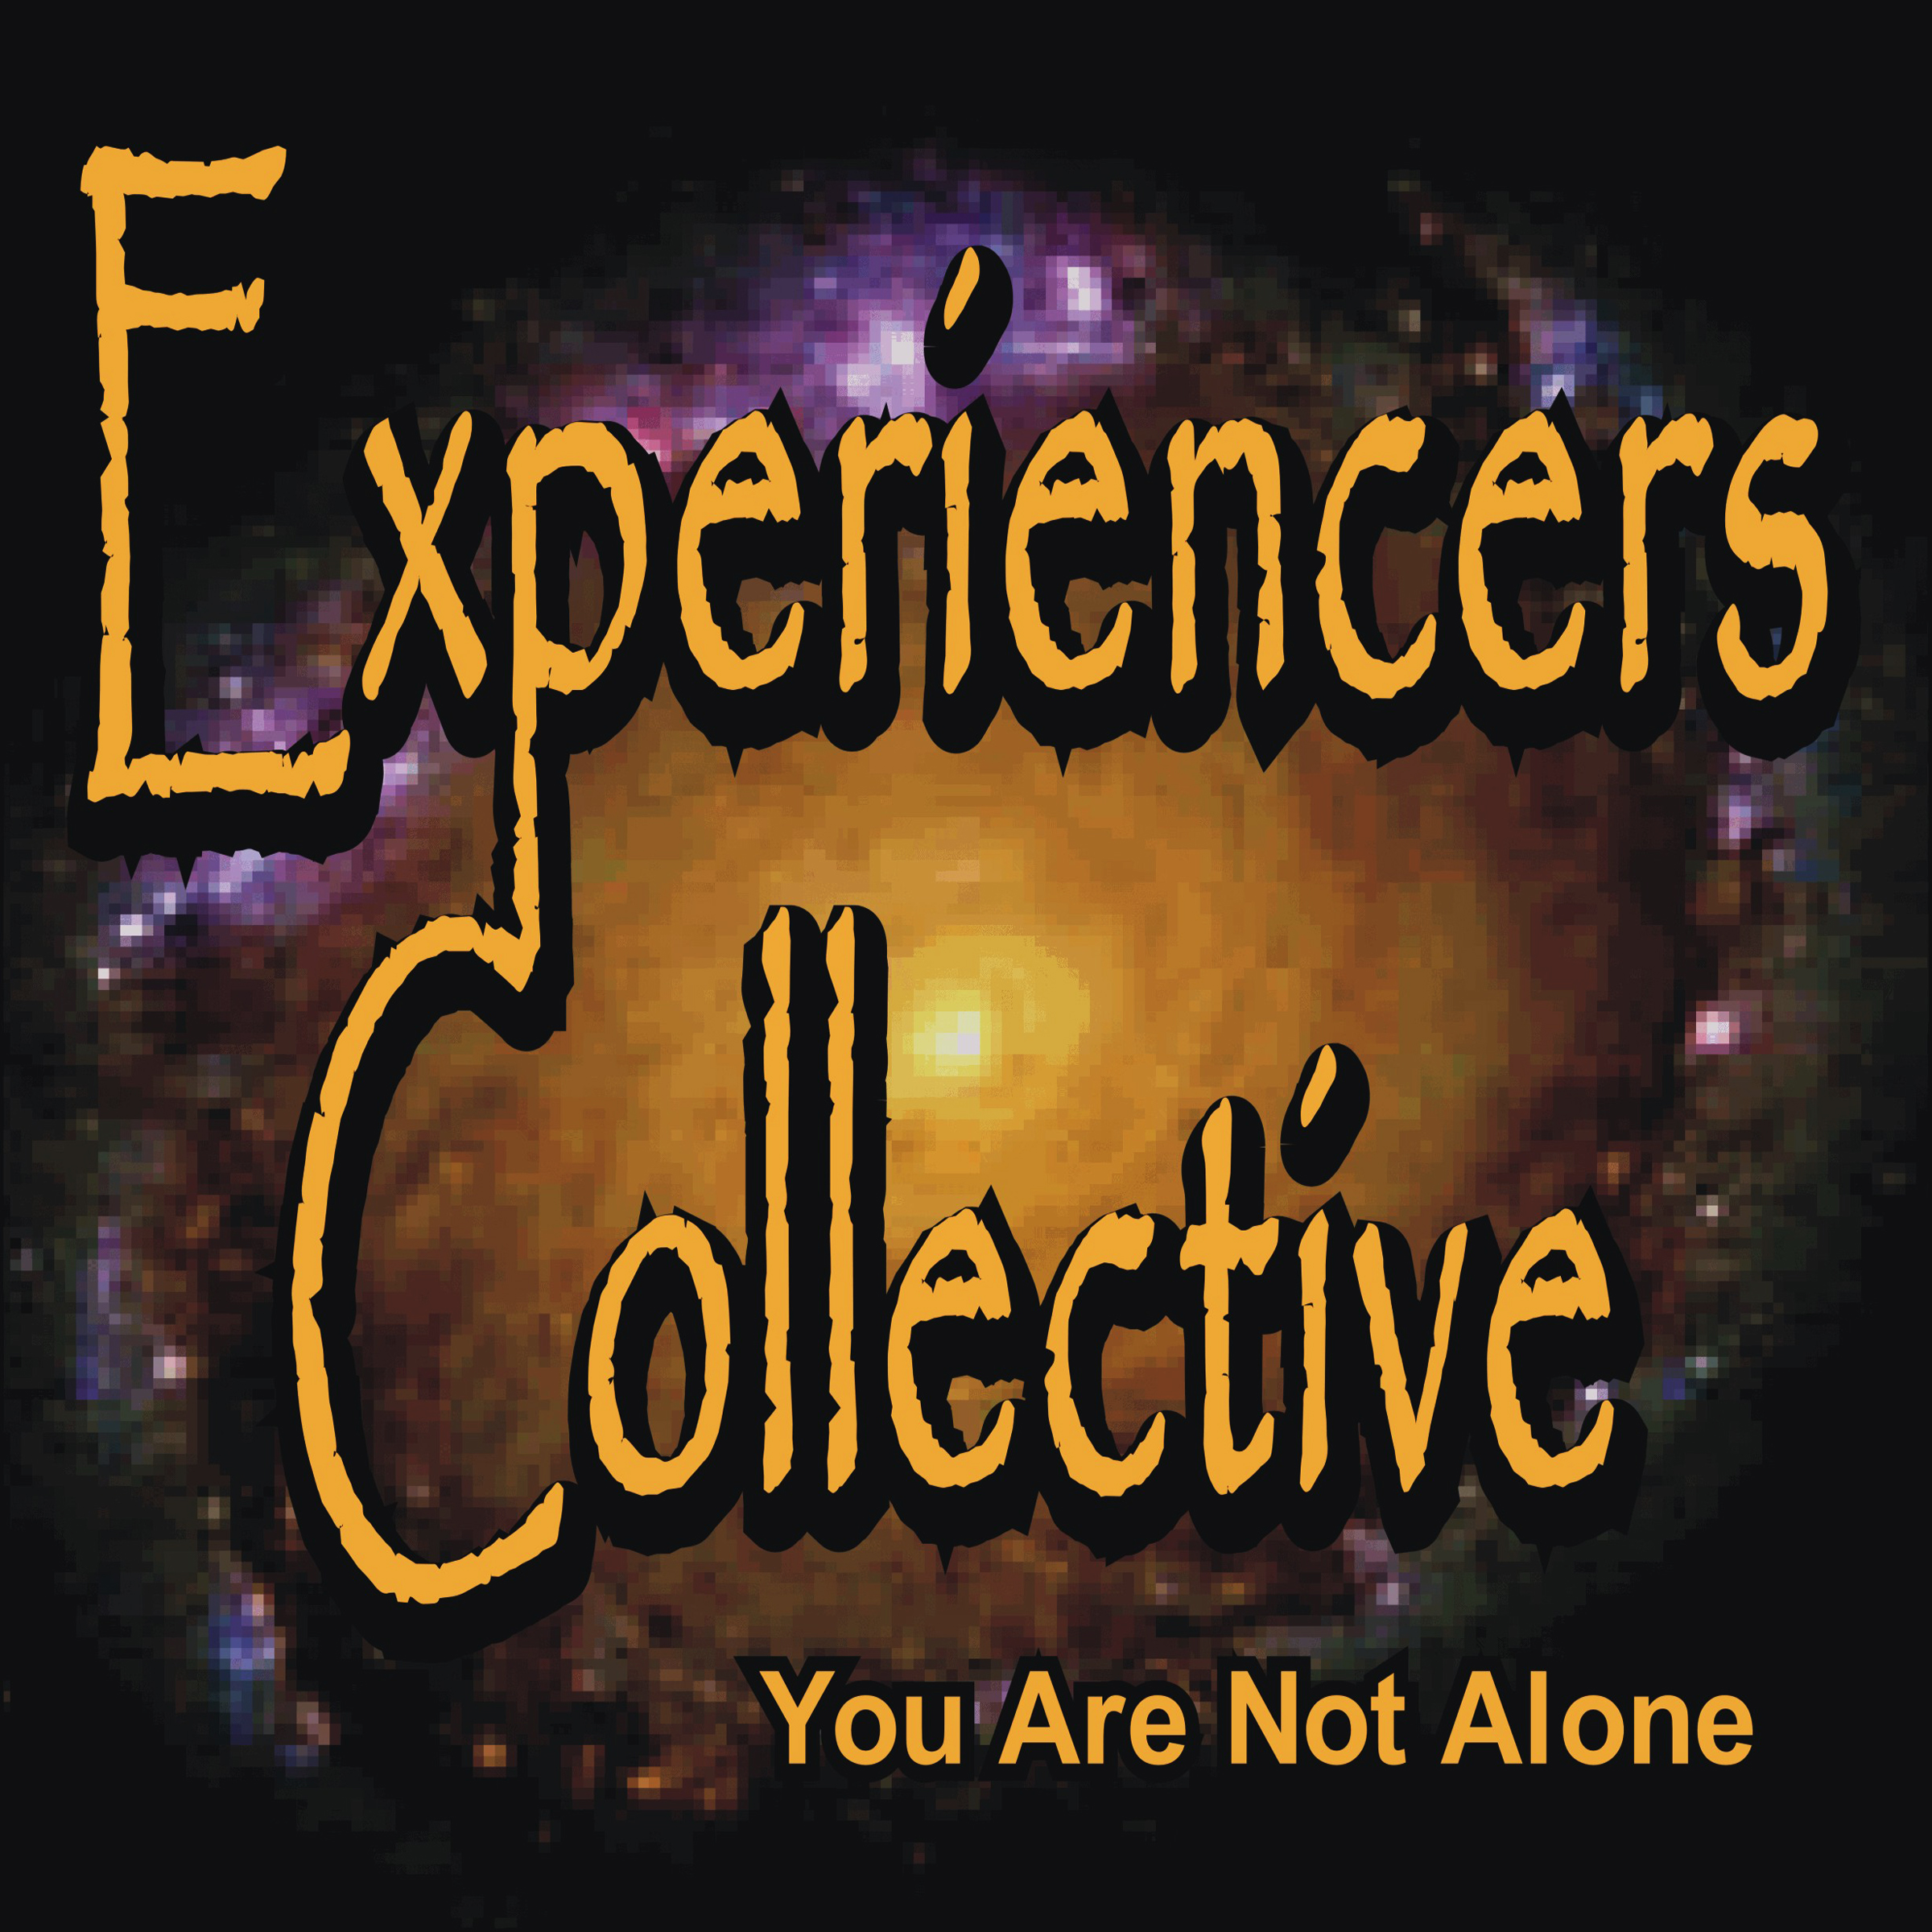 Experiencers Collective,Starman